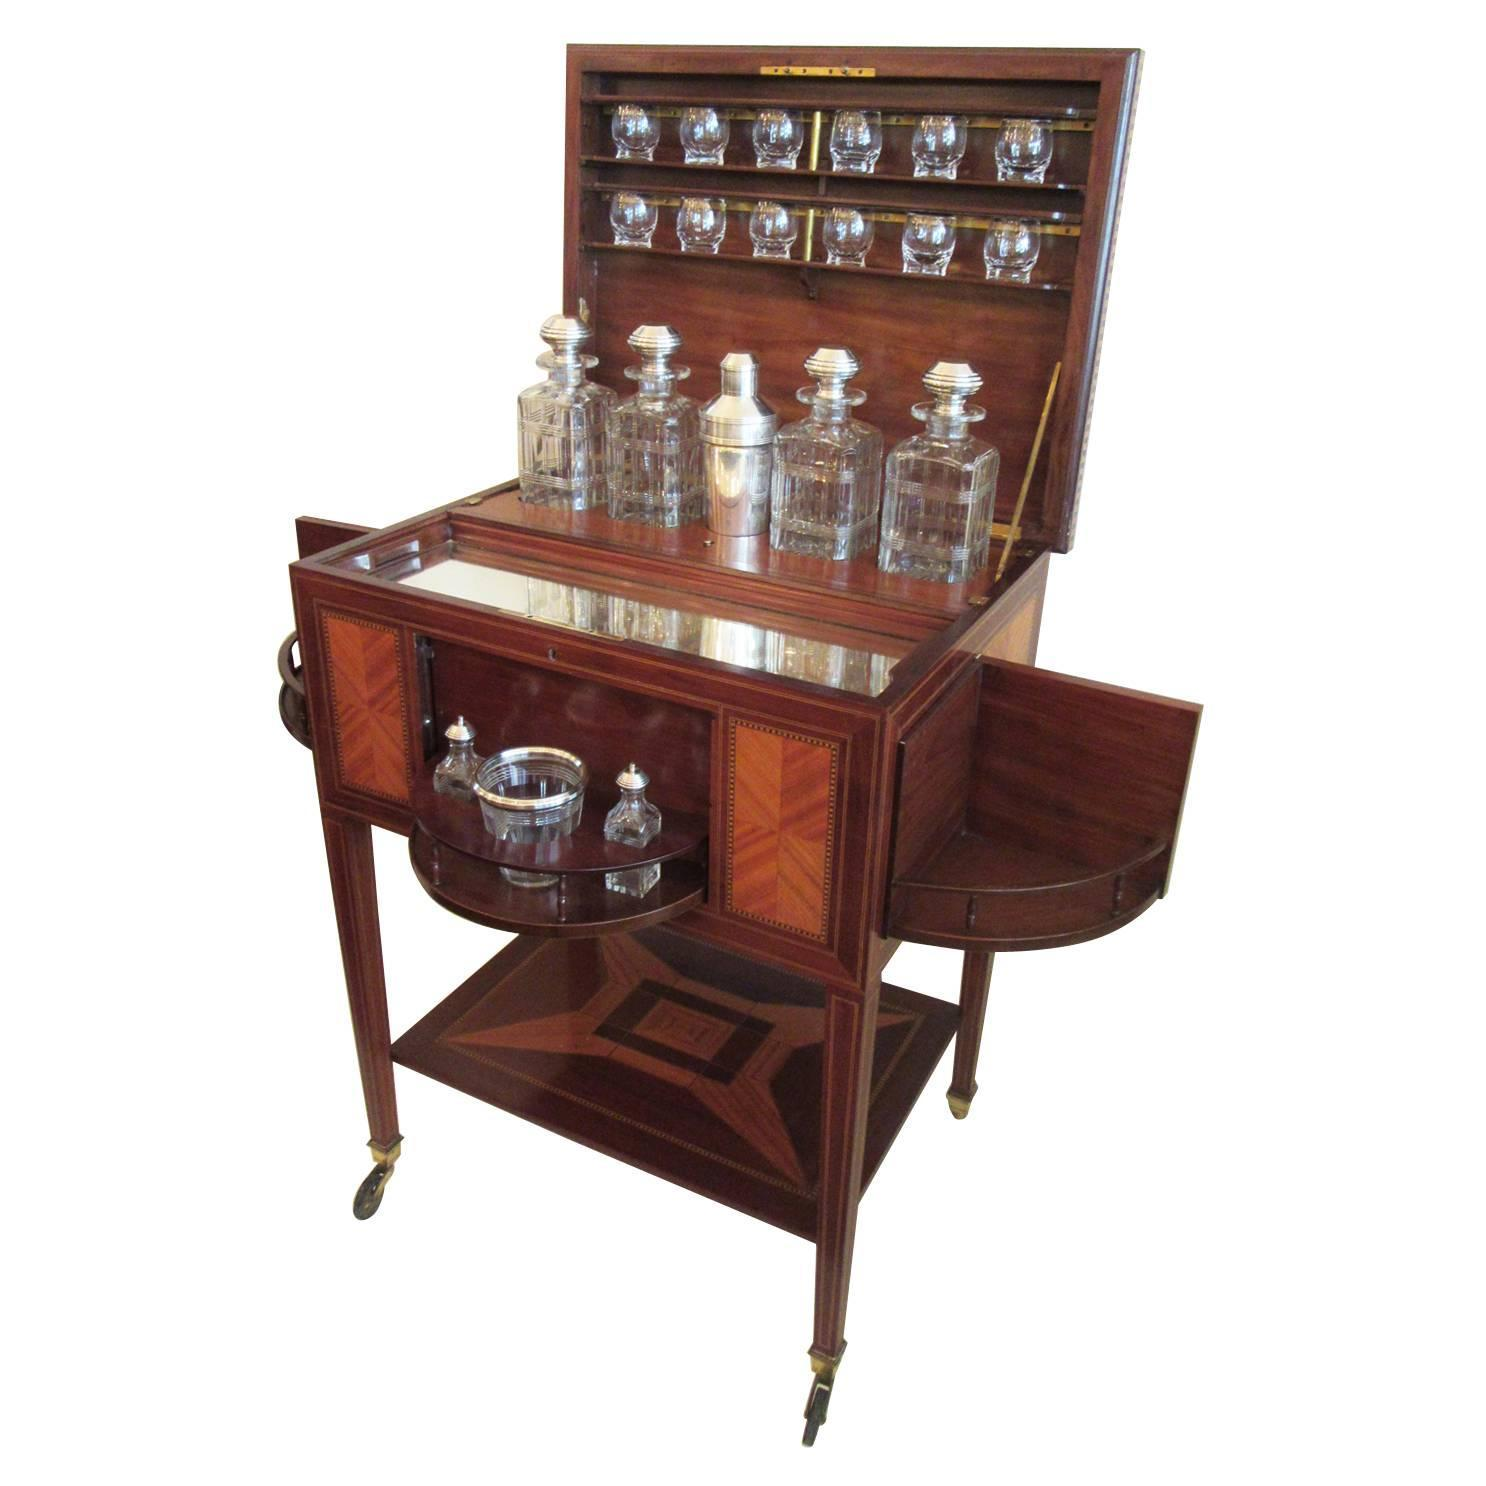 19th C French Art Deco Drinks Cabinet By Maison Boin